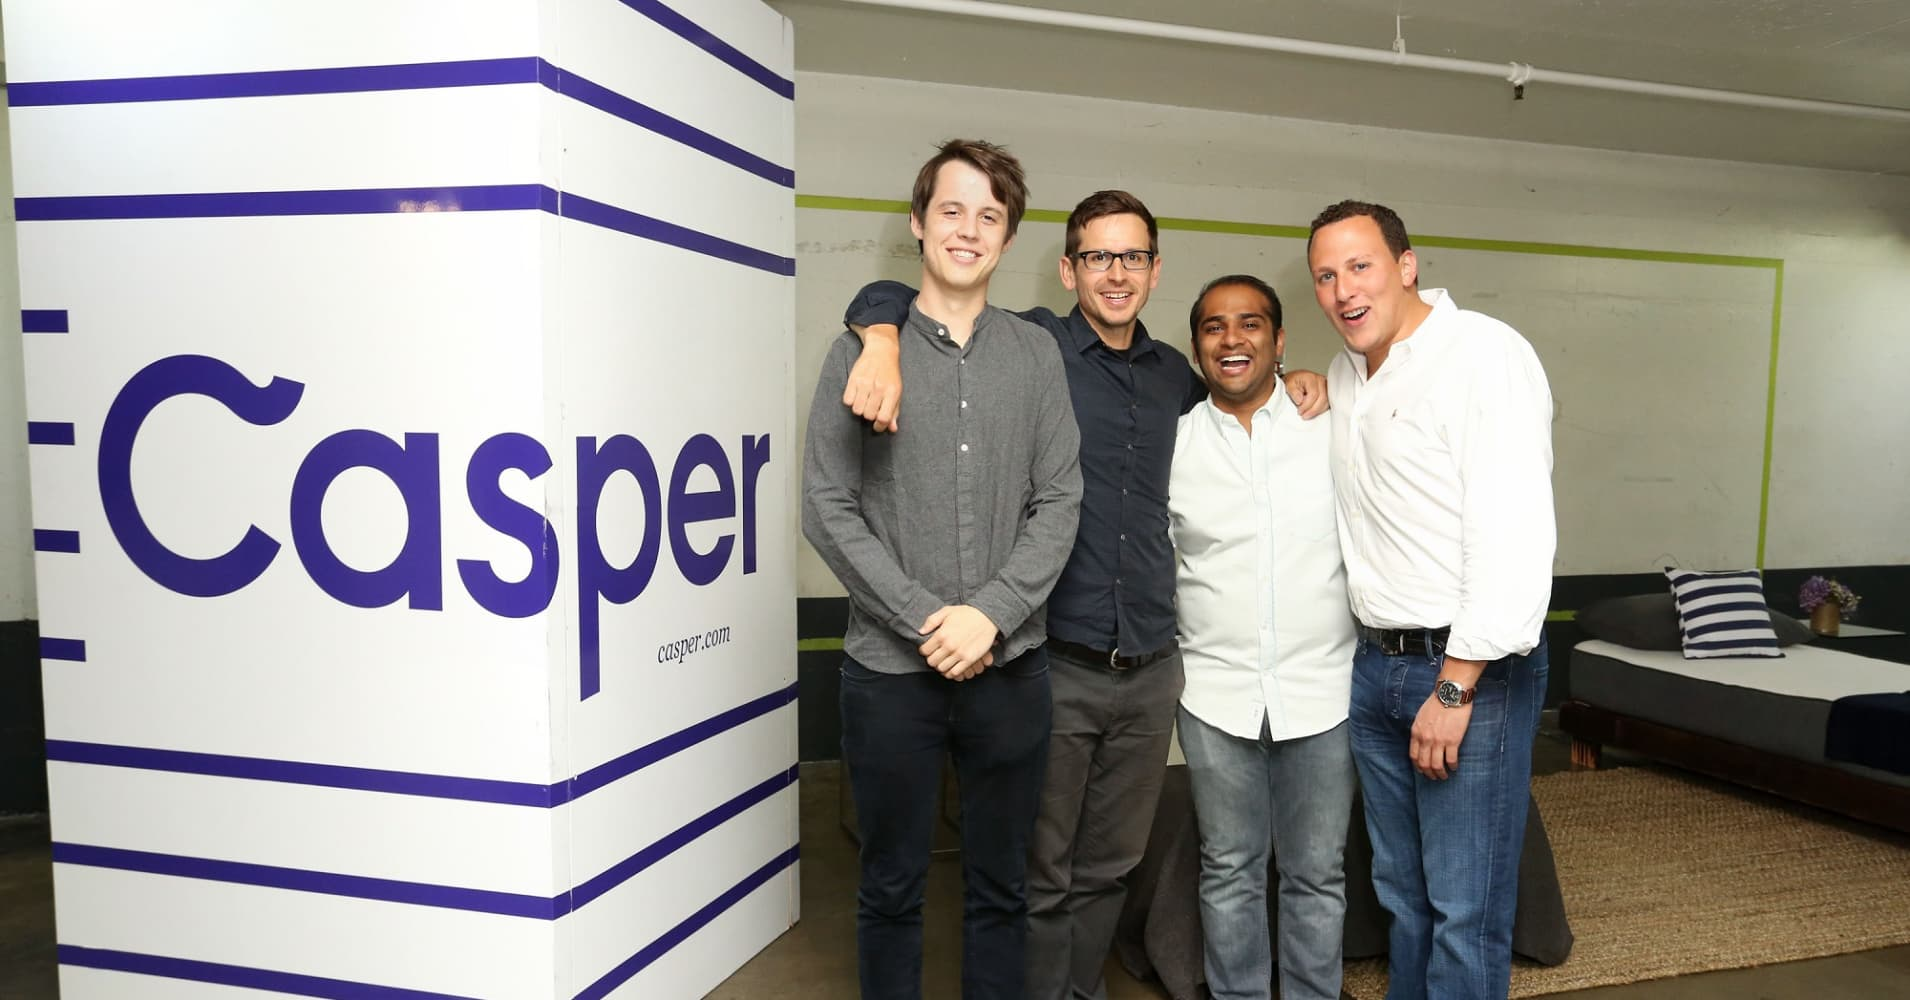 Casper Co-Founders T. Luke Sherwin, Jeff Chapin, Neil Parikh, and Philip Krim attend Casper's LA celebration at Blind Dragon on July 9, 2015 in West Hollywood, California.